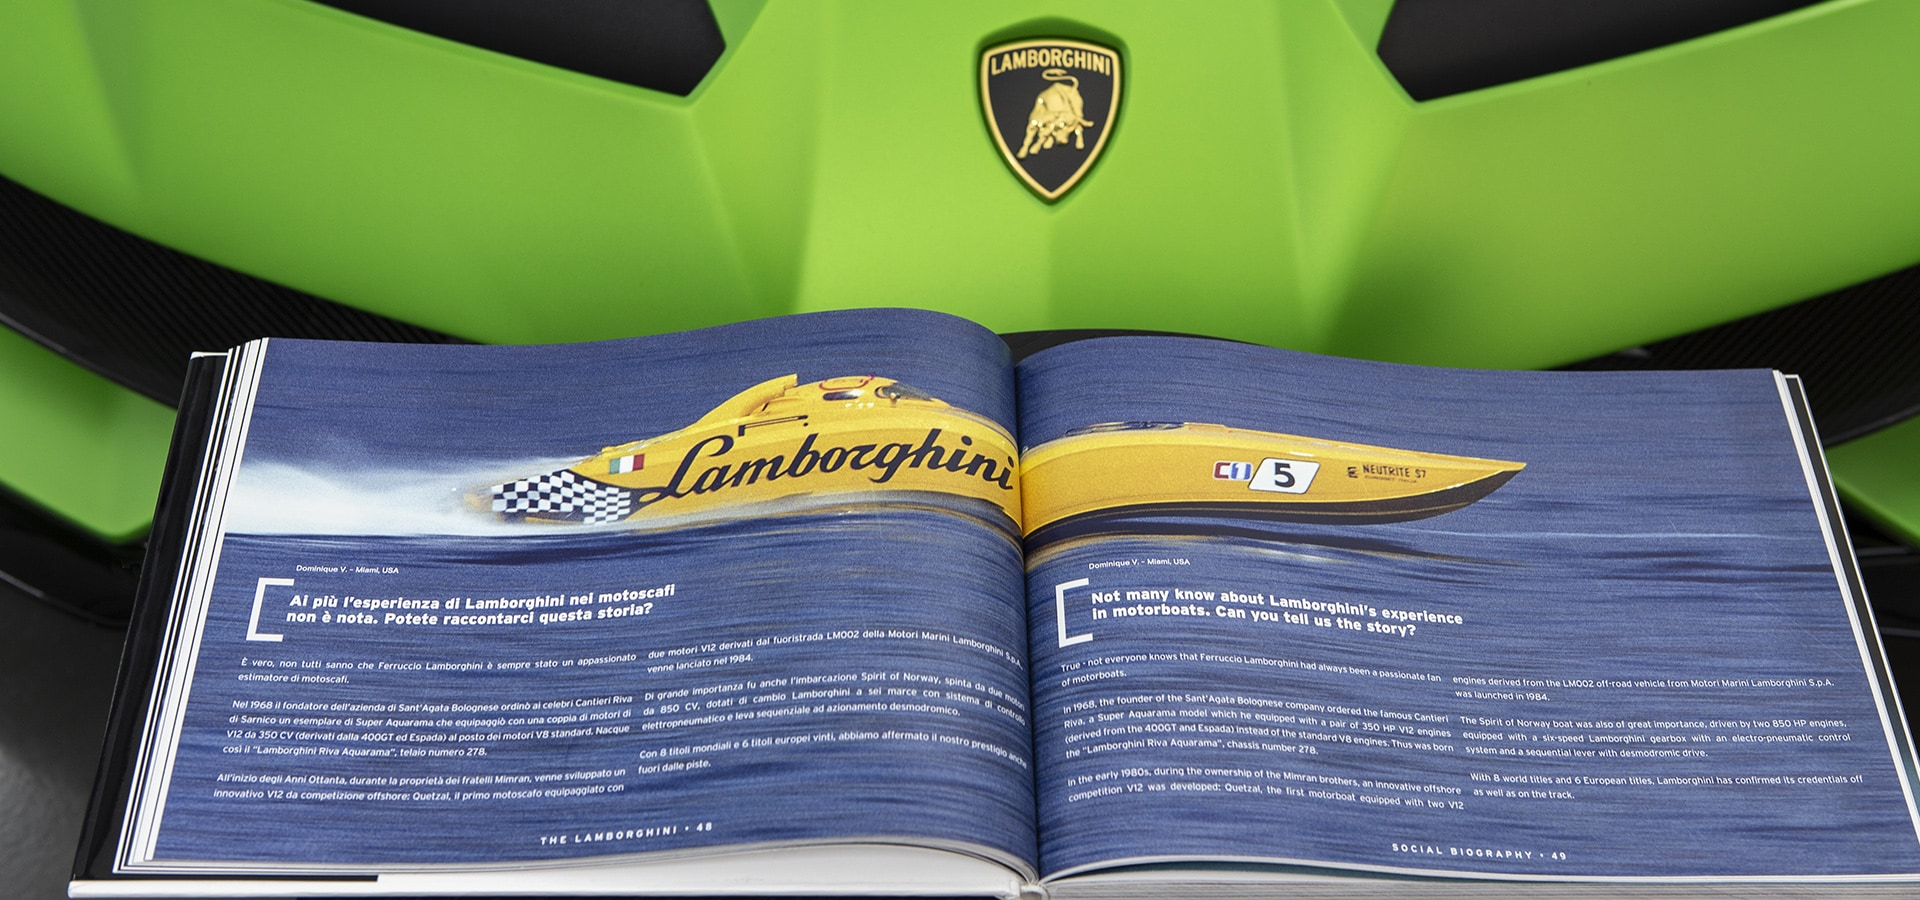 The Lamborghini Social Biography